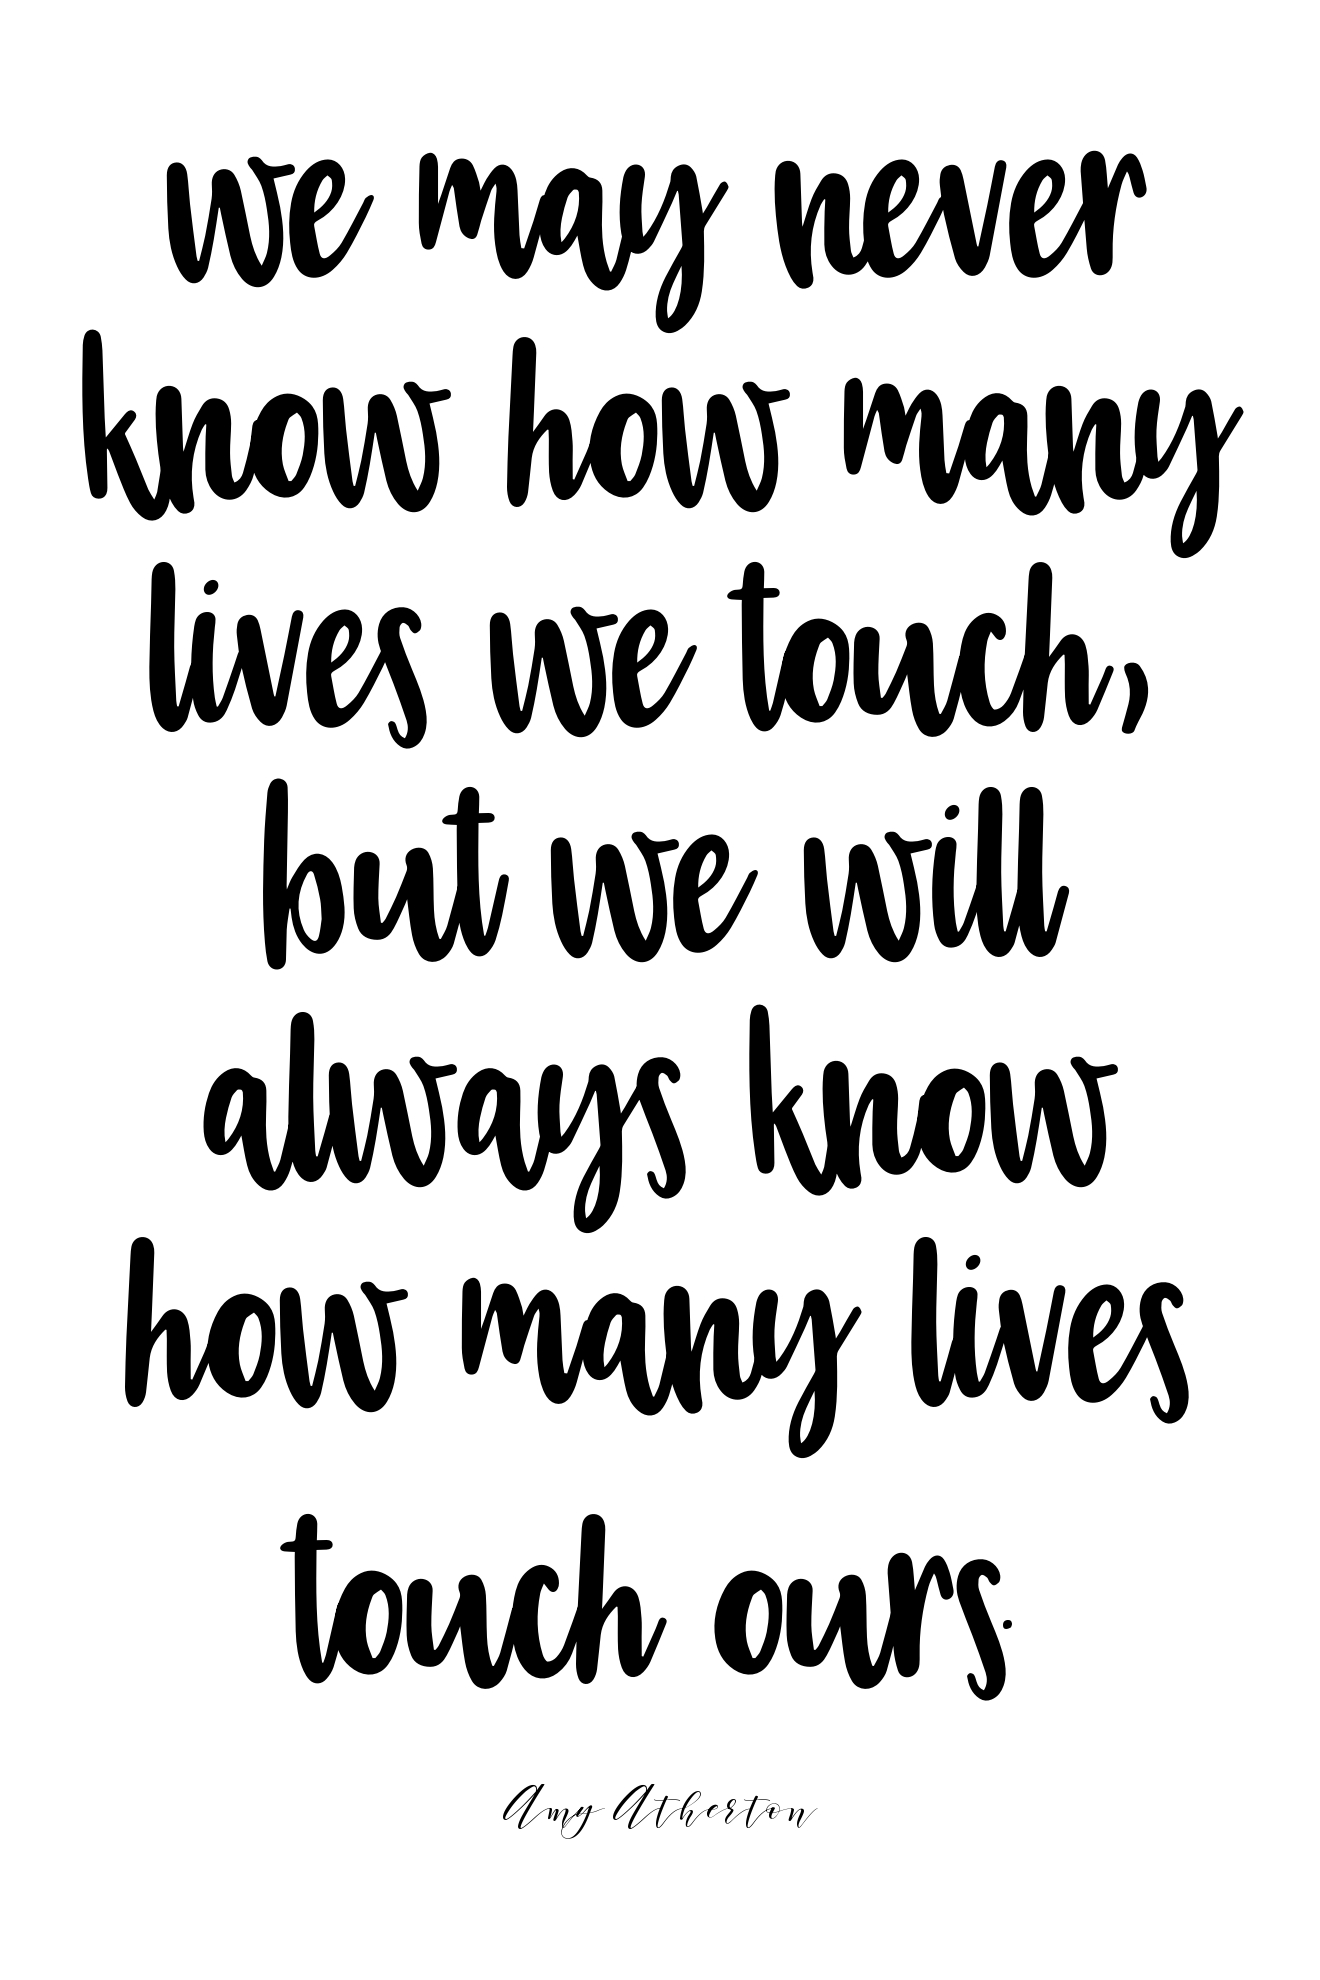 """We may never know how many lives we touch, but we will always know how many lives touch ours."" -Amy Atherton (quote)"